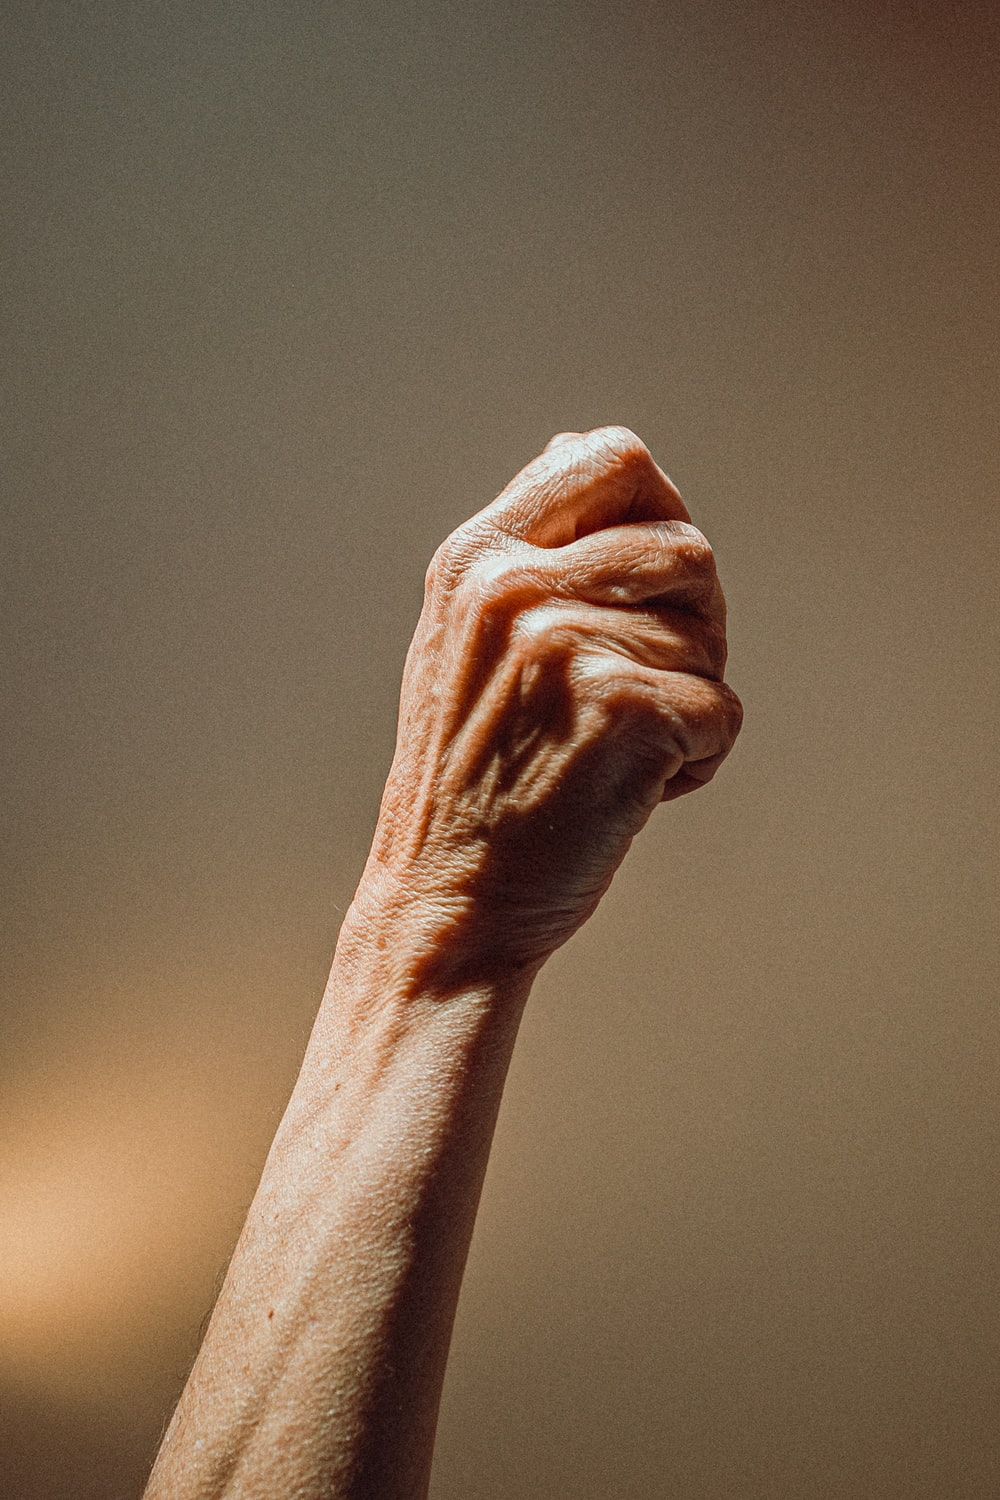 persons left hand on gray surface